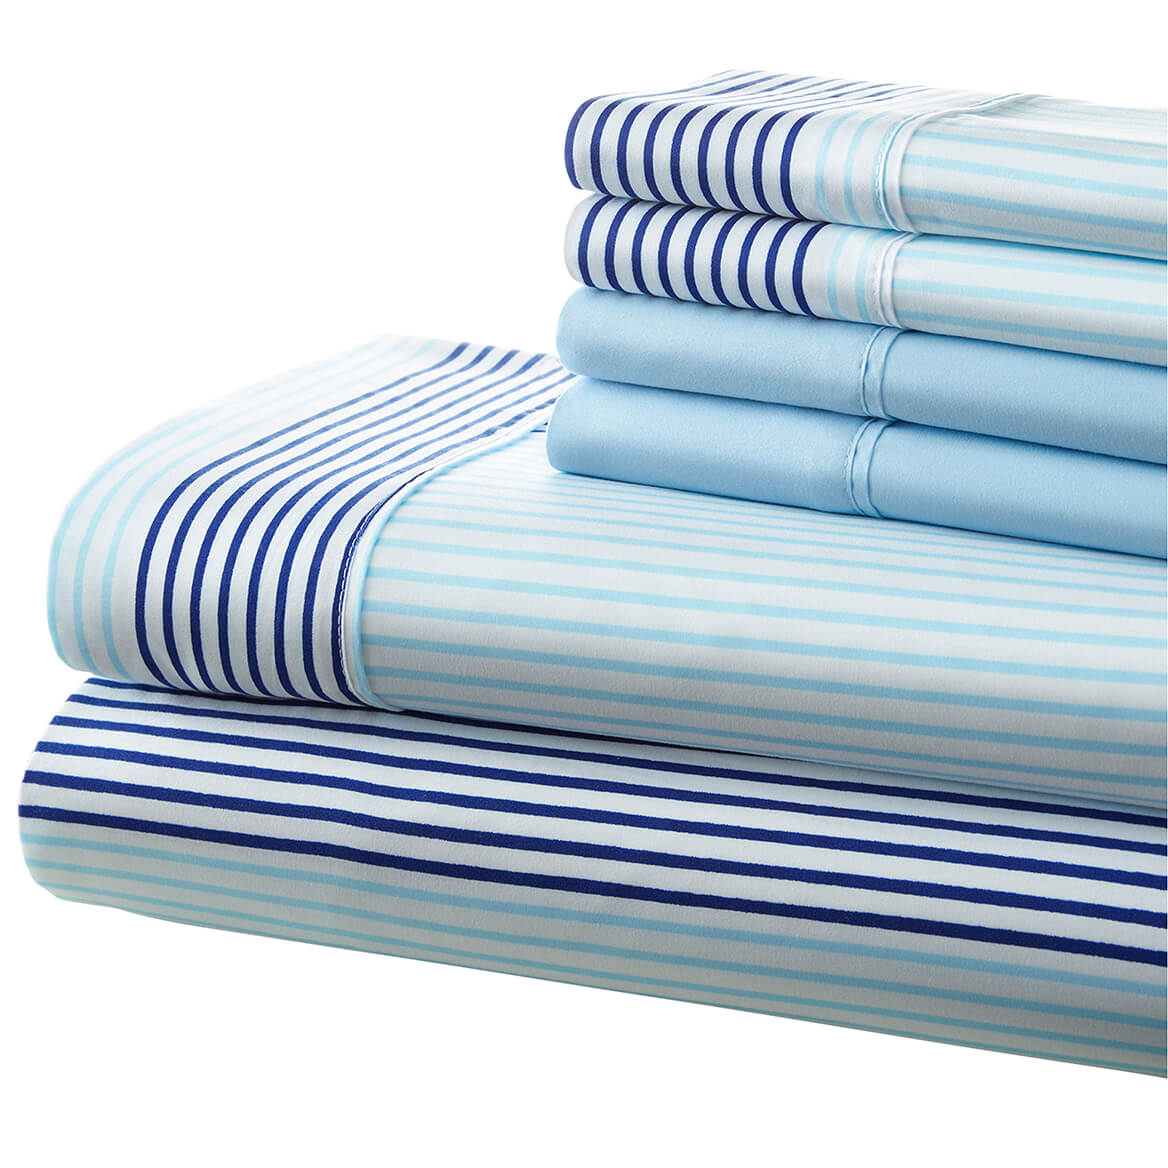 Hotel 5th Ave 90gsm Microfiber Sheet Set - Blue City Stripe